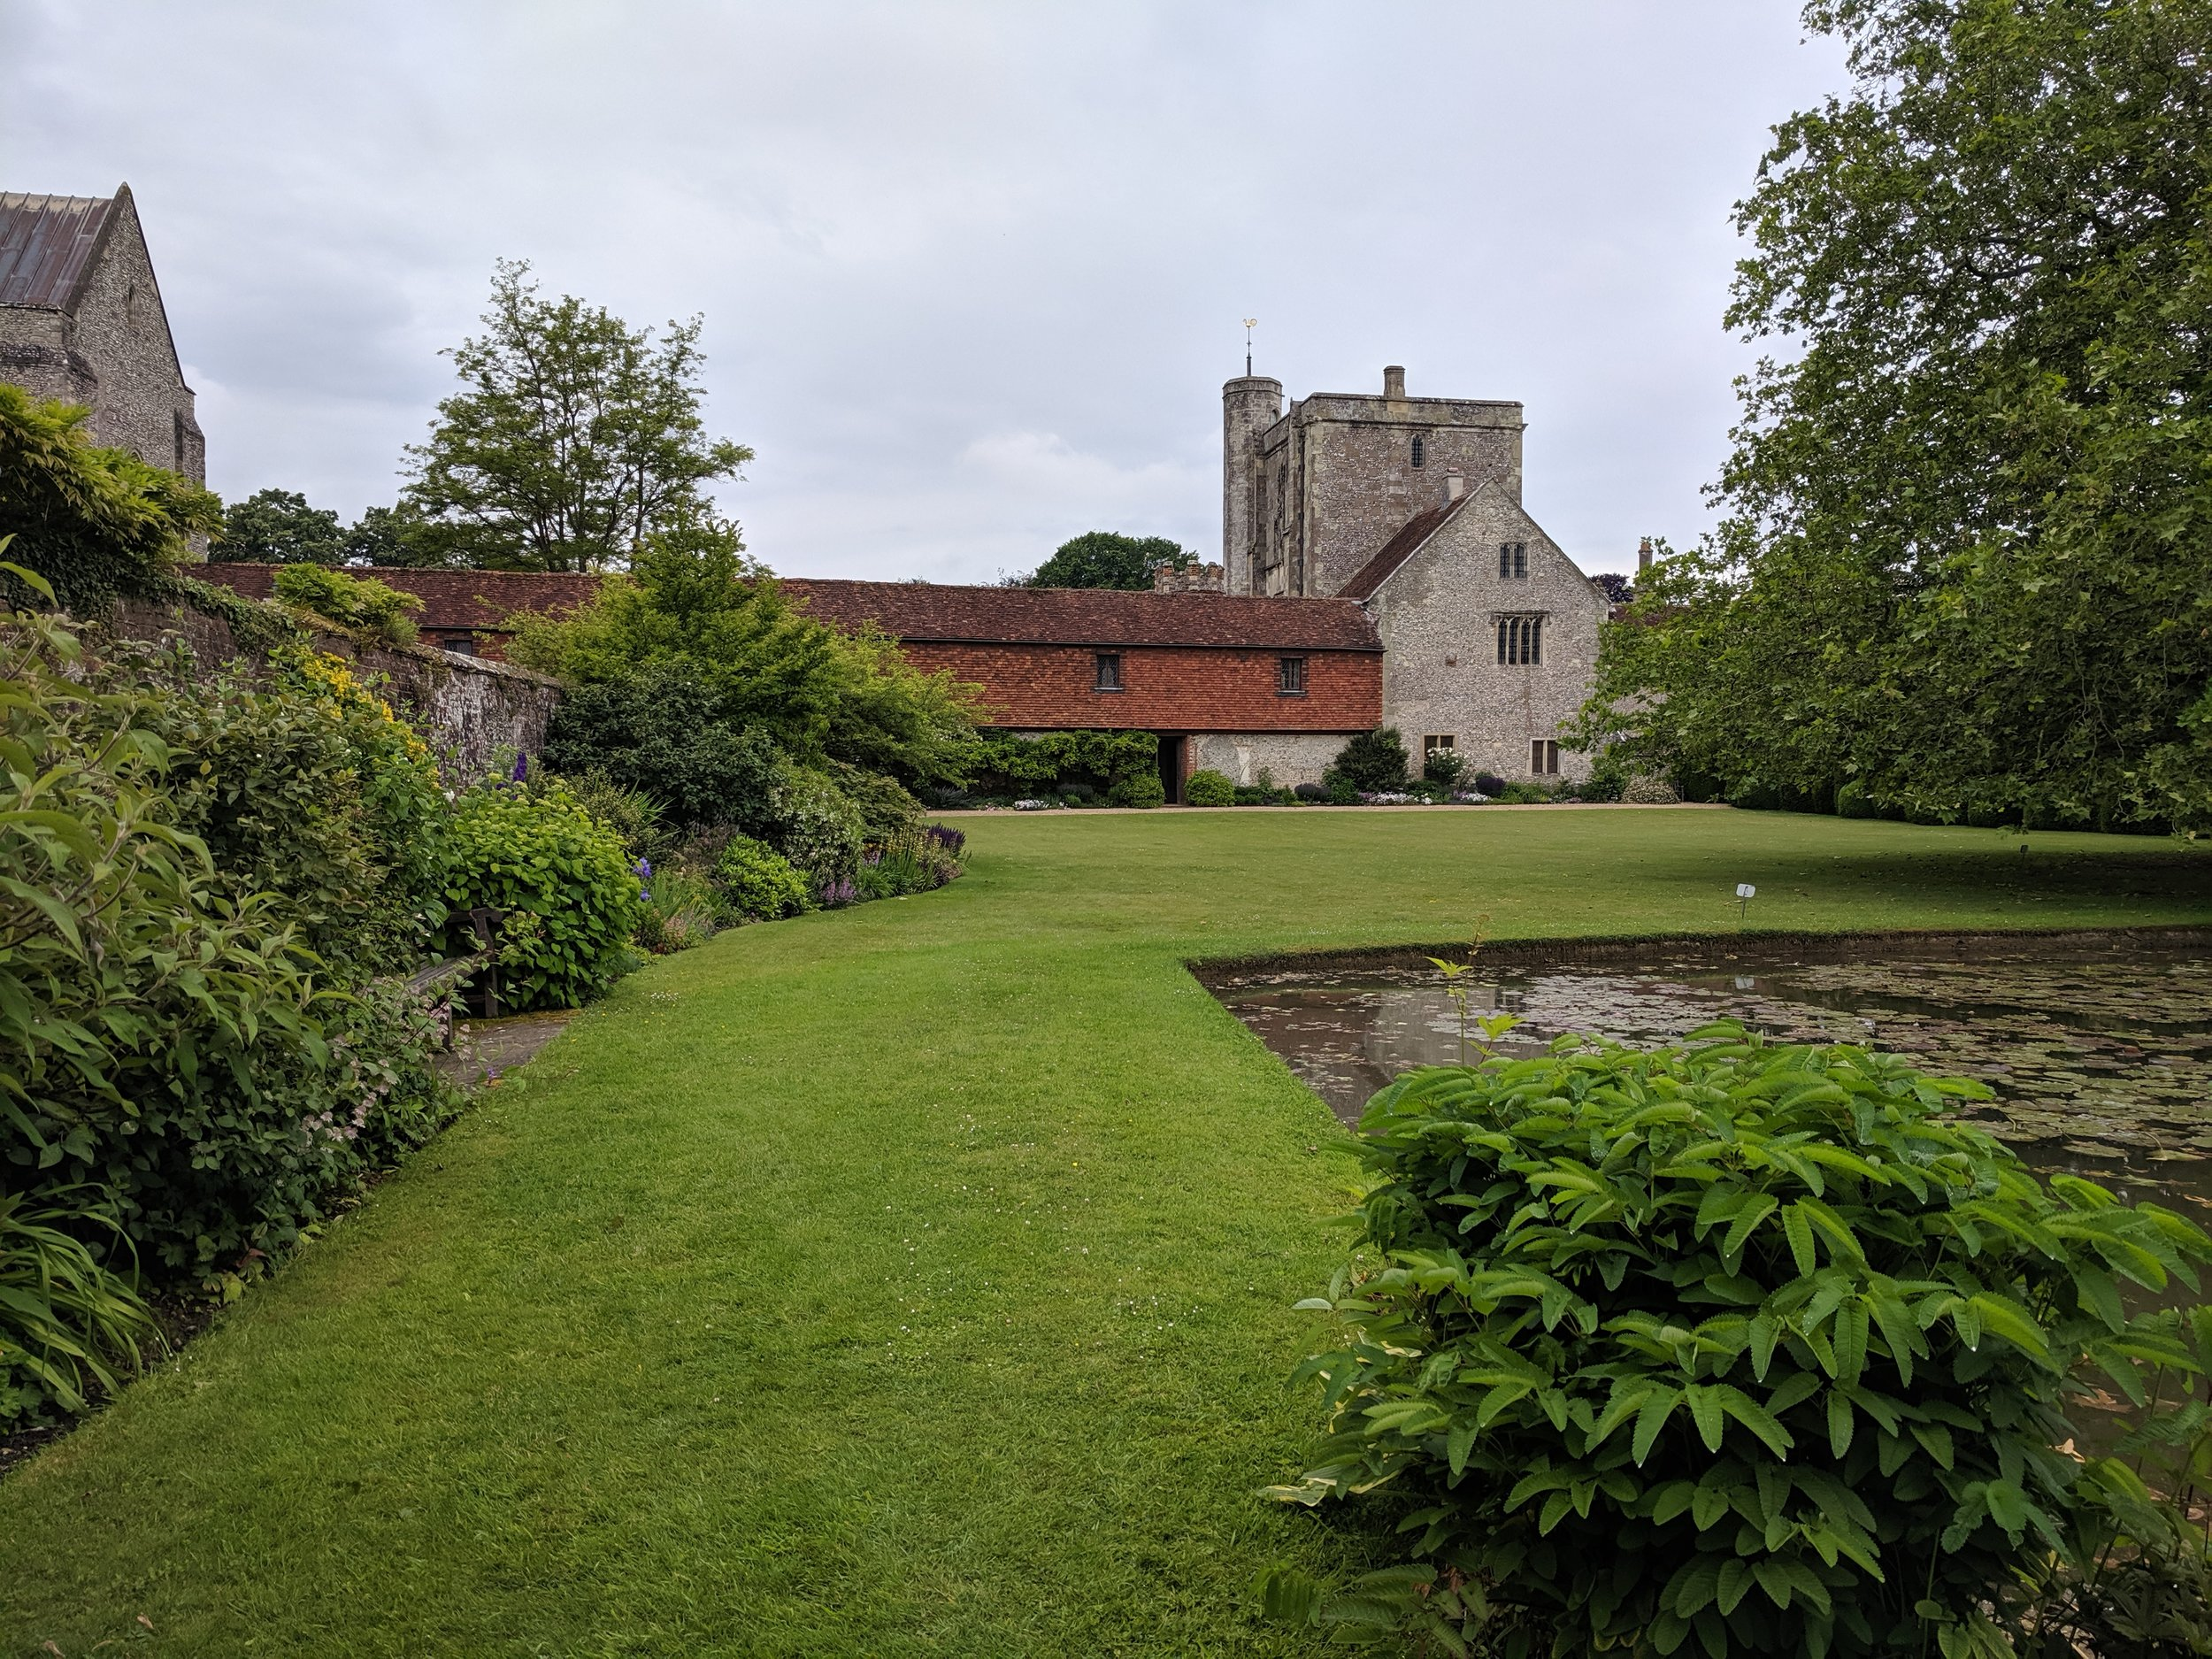 The Hospital of St Cross and Almshouse of Noble Poverty. Not pictured: dead pigeon in the pond. (Though of course I took a photo for Heidi Trudell and her  Dead Birds 4 Science!  group.)